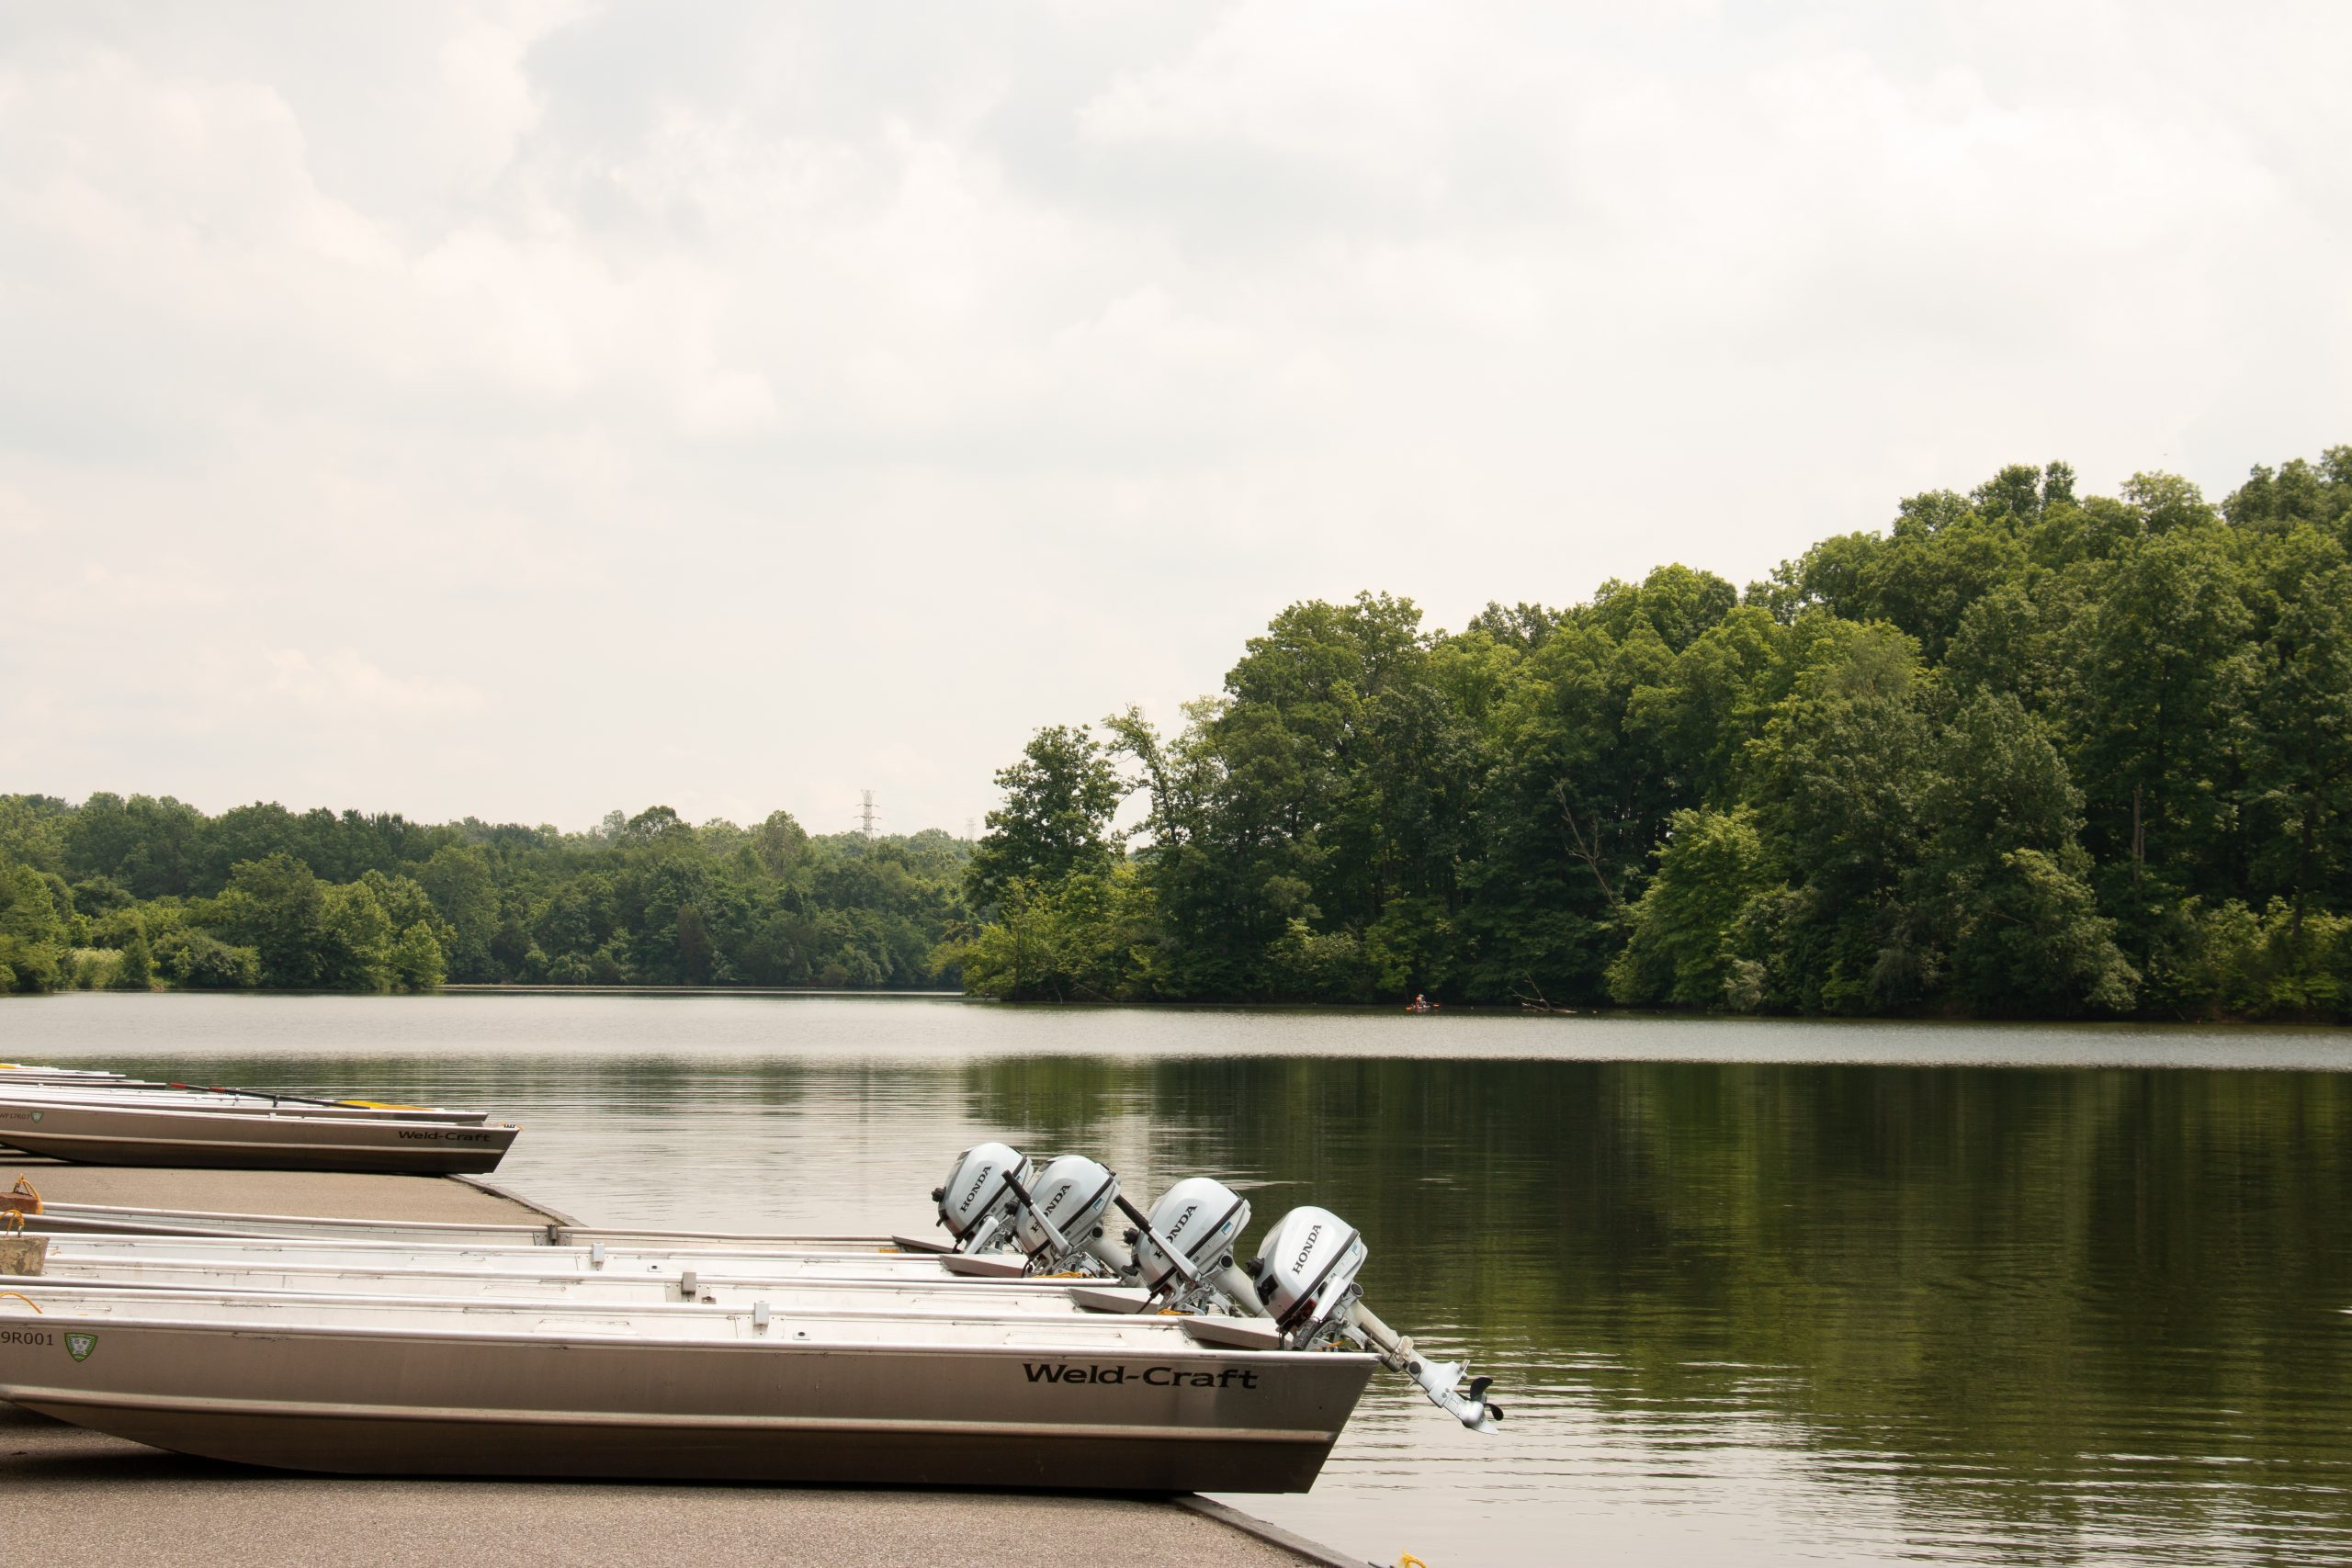 Boats line the shore of Miami Whitewater Forest Lake during a sunny summer day.